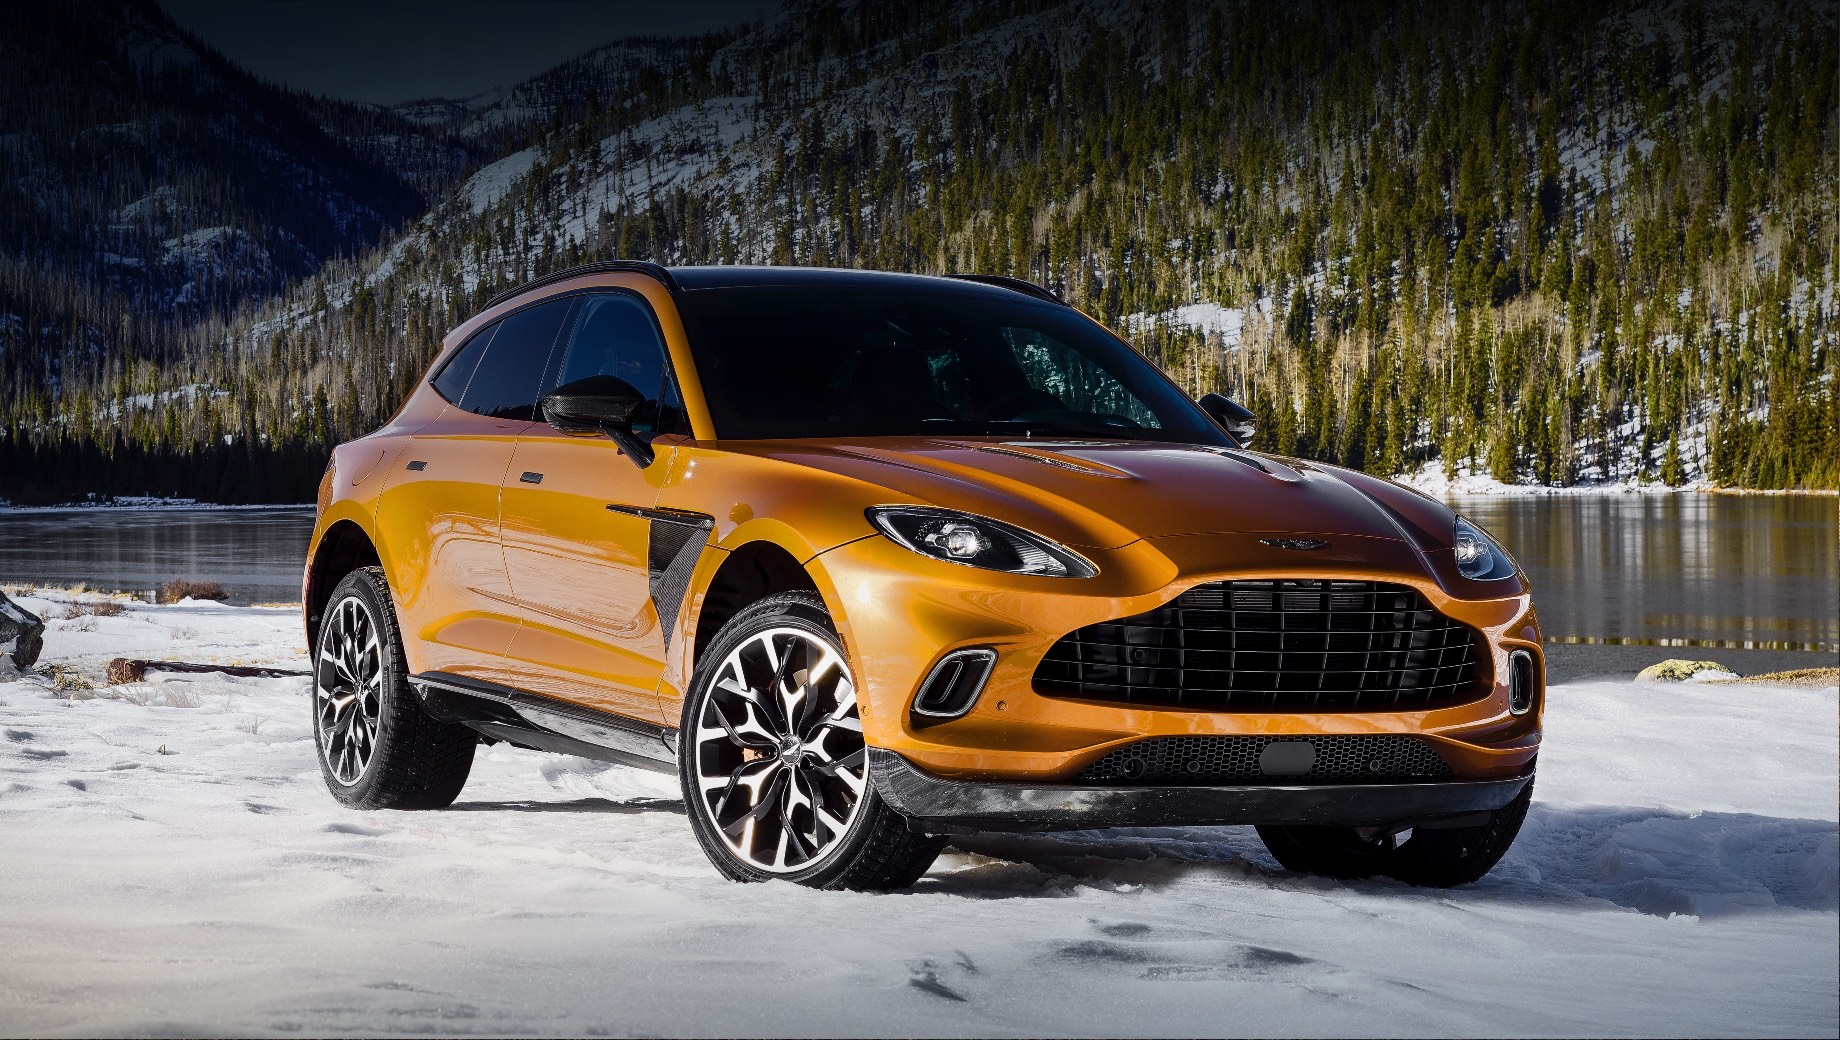 The First Aston Martin Dbx Crossovers Arrived In Russia Drive